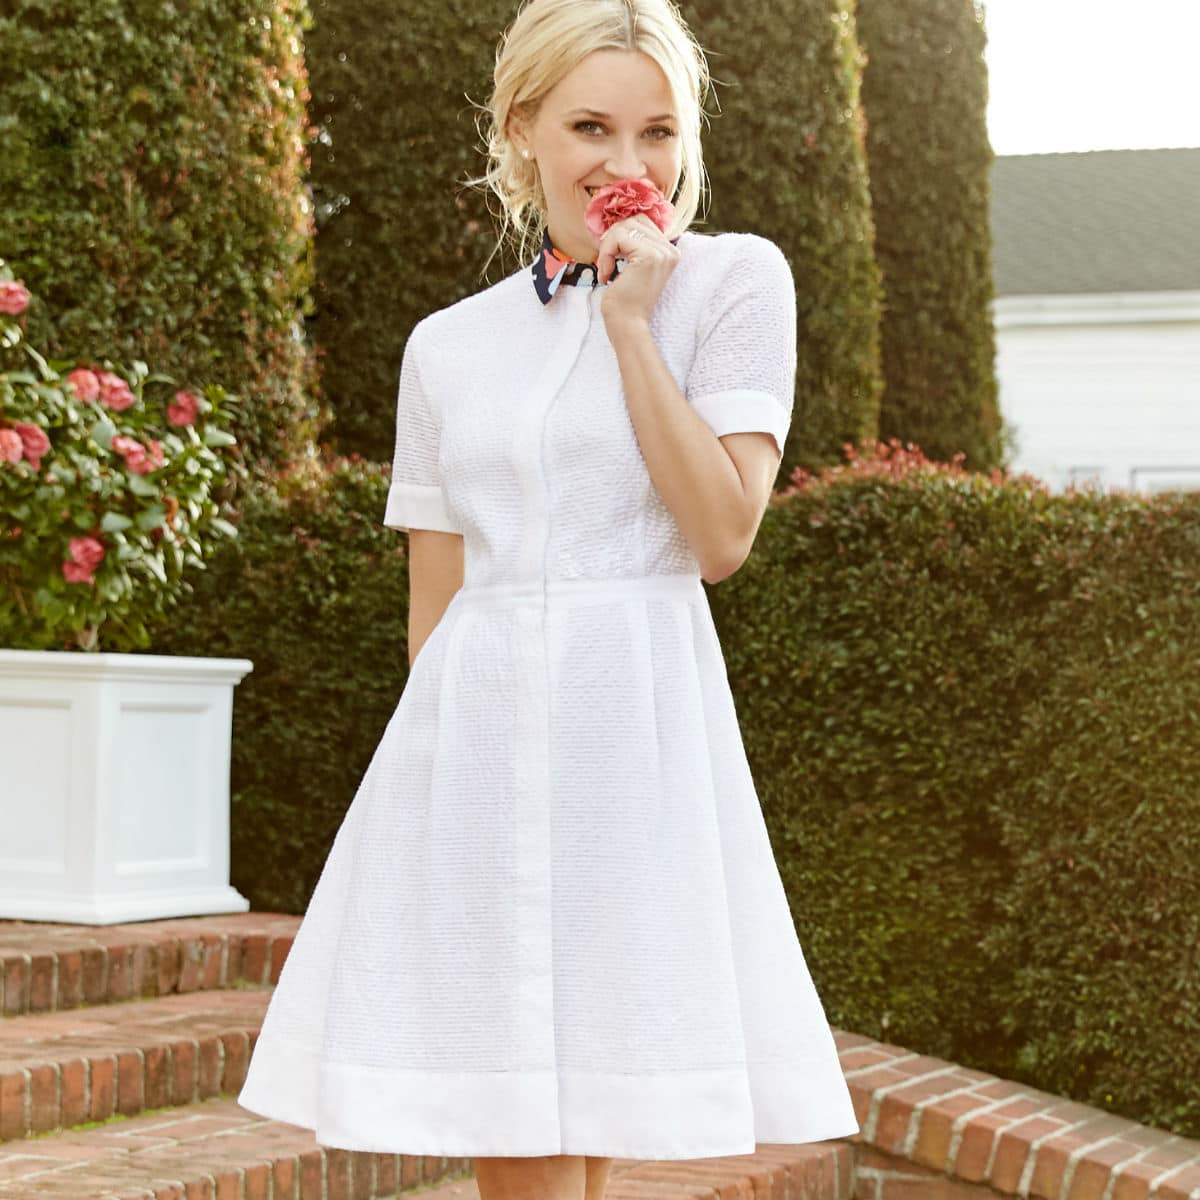 Reese Witherspoon for Draper James